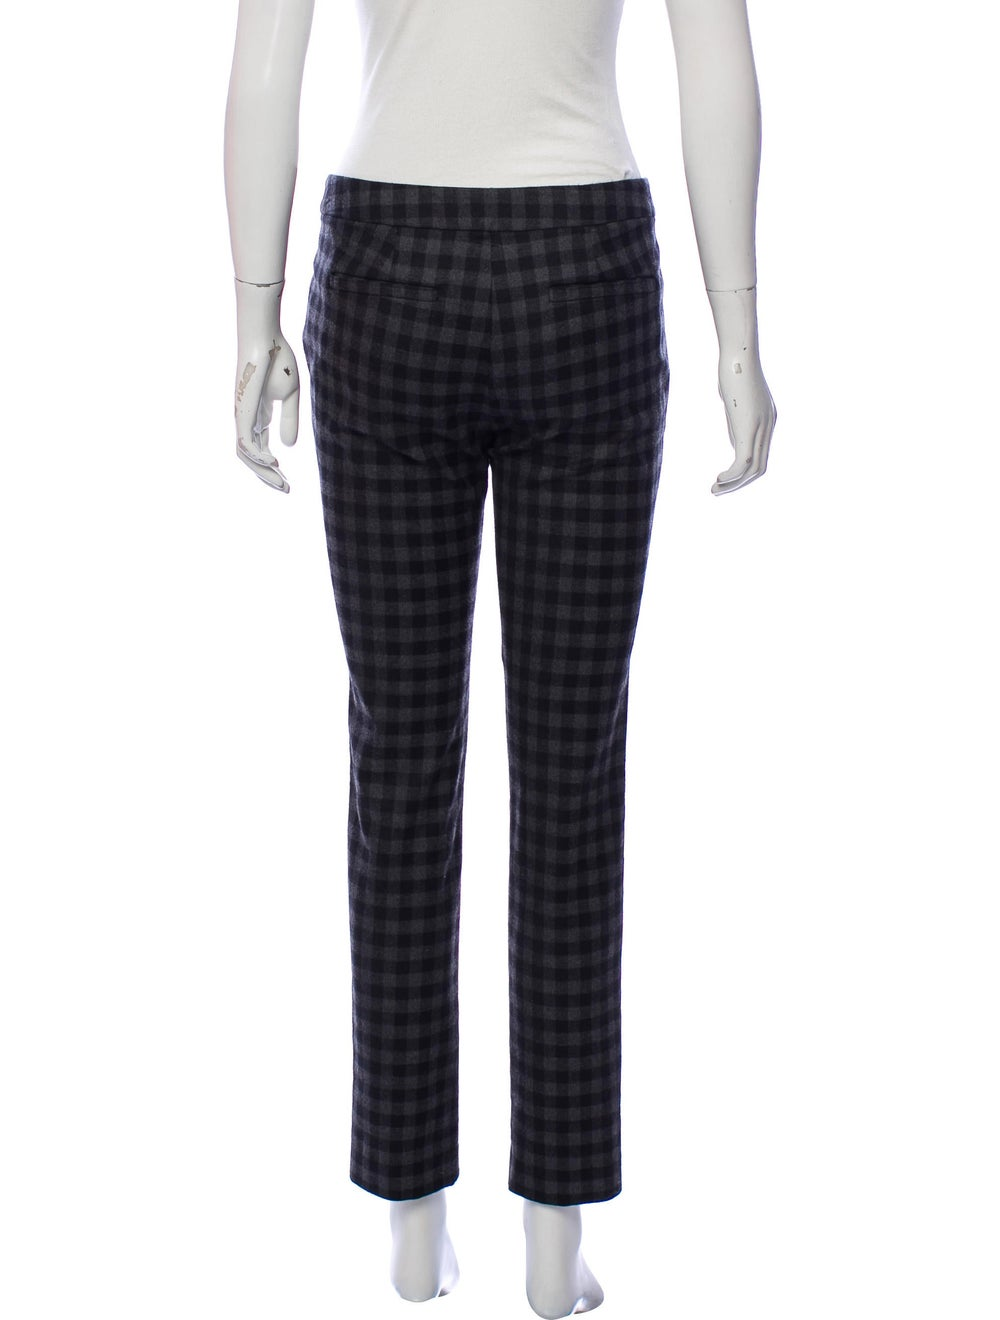 A.l.c. Checkered Skinny Pants Black - image 3